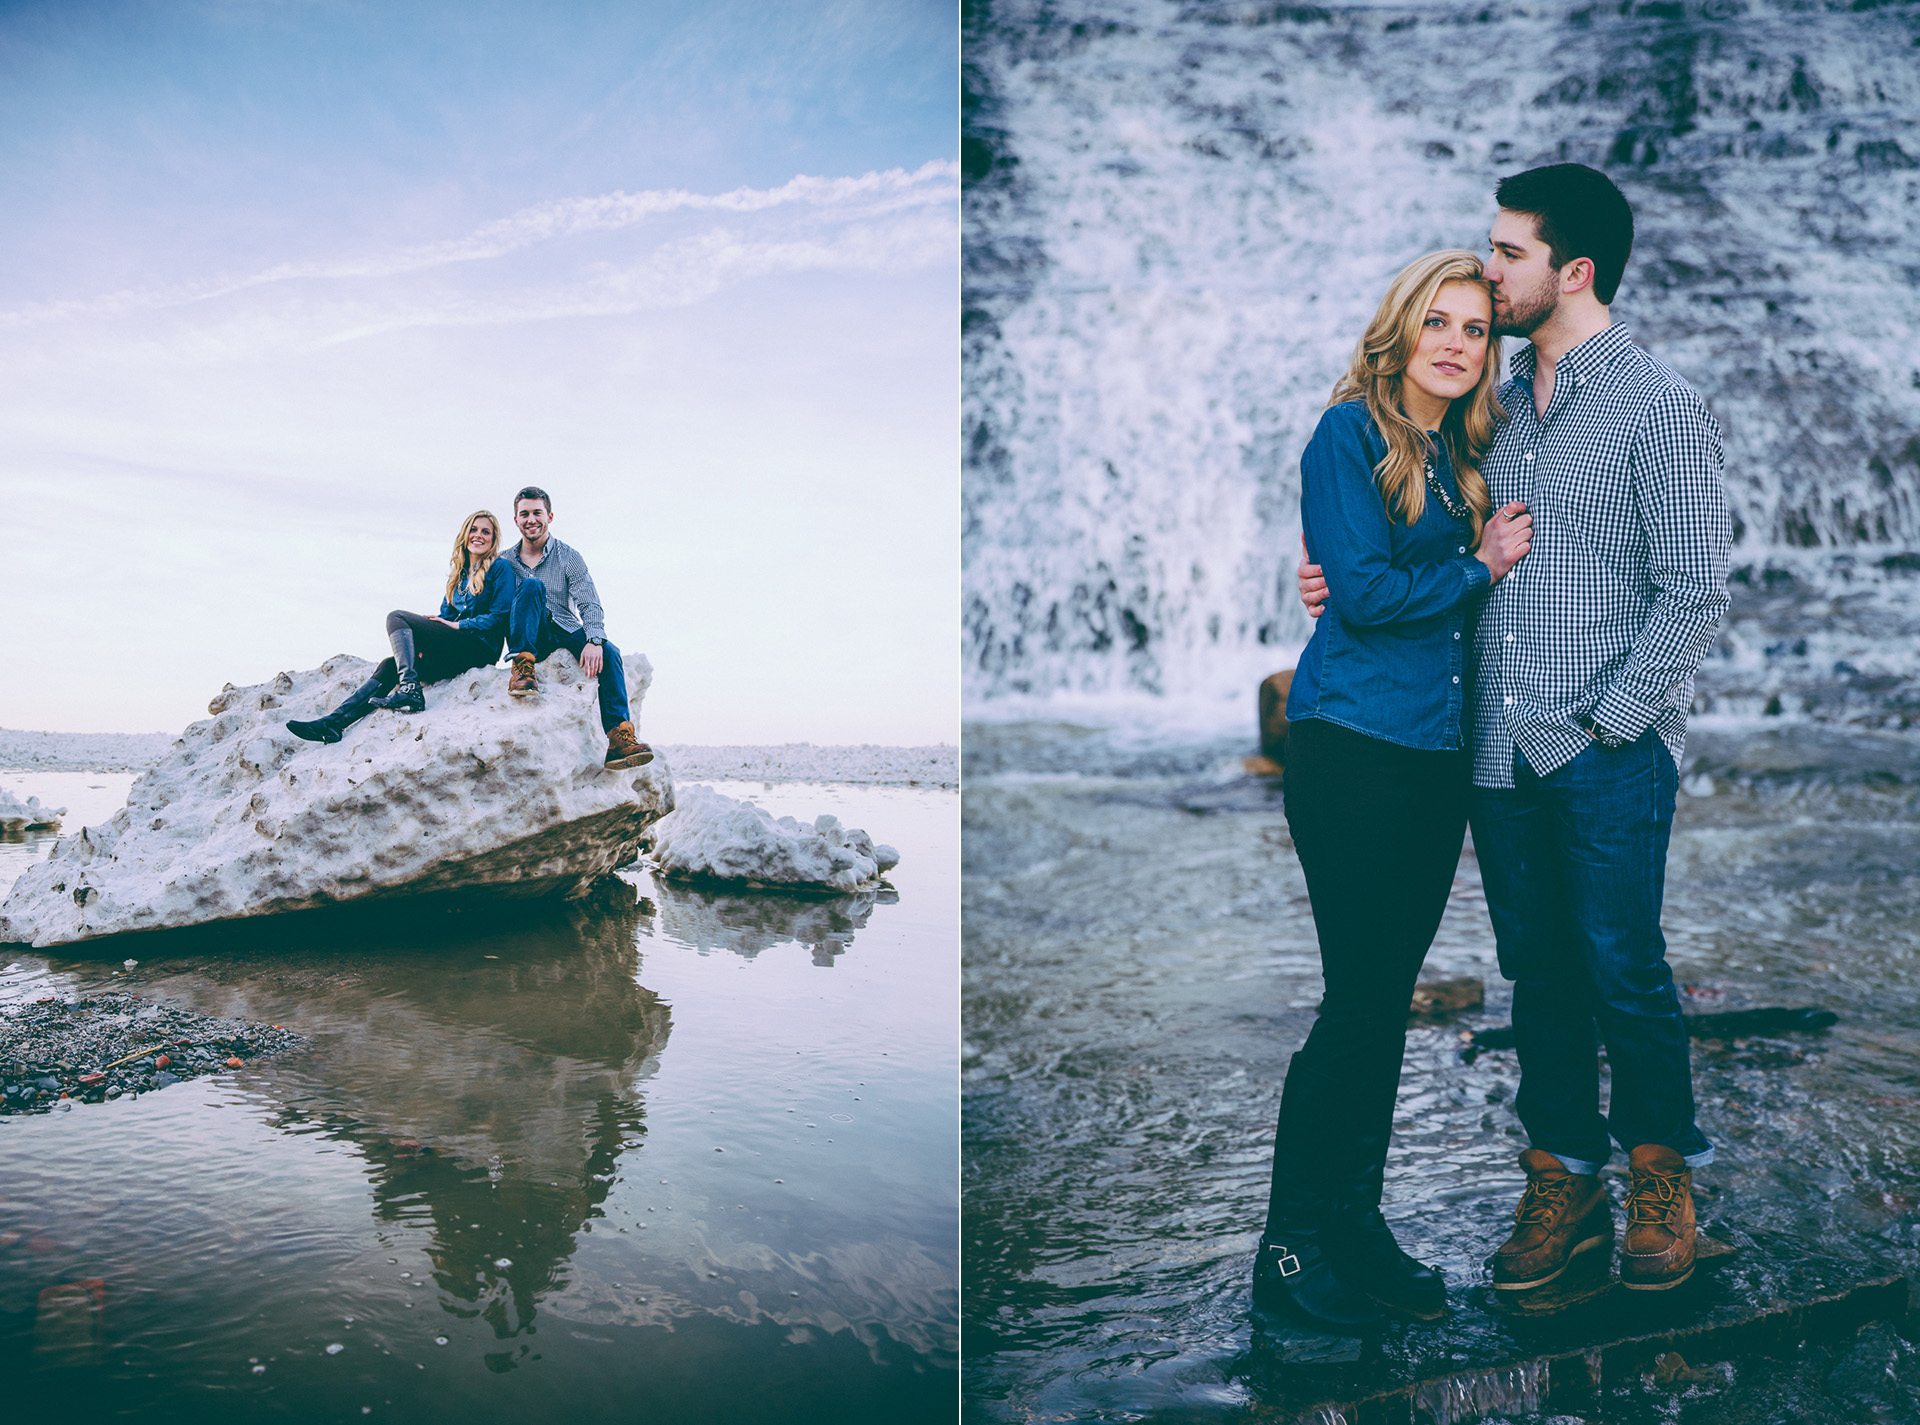 Winter Engagement Session in Bay Village - Too Much Awesomeness - Cleveland Wedding Photographer 15.jpg